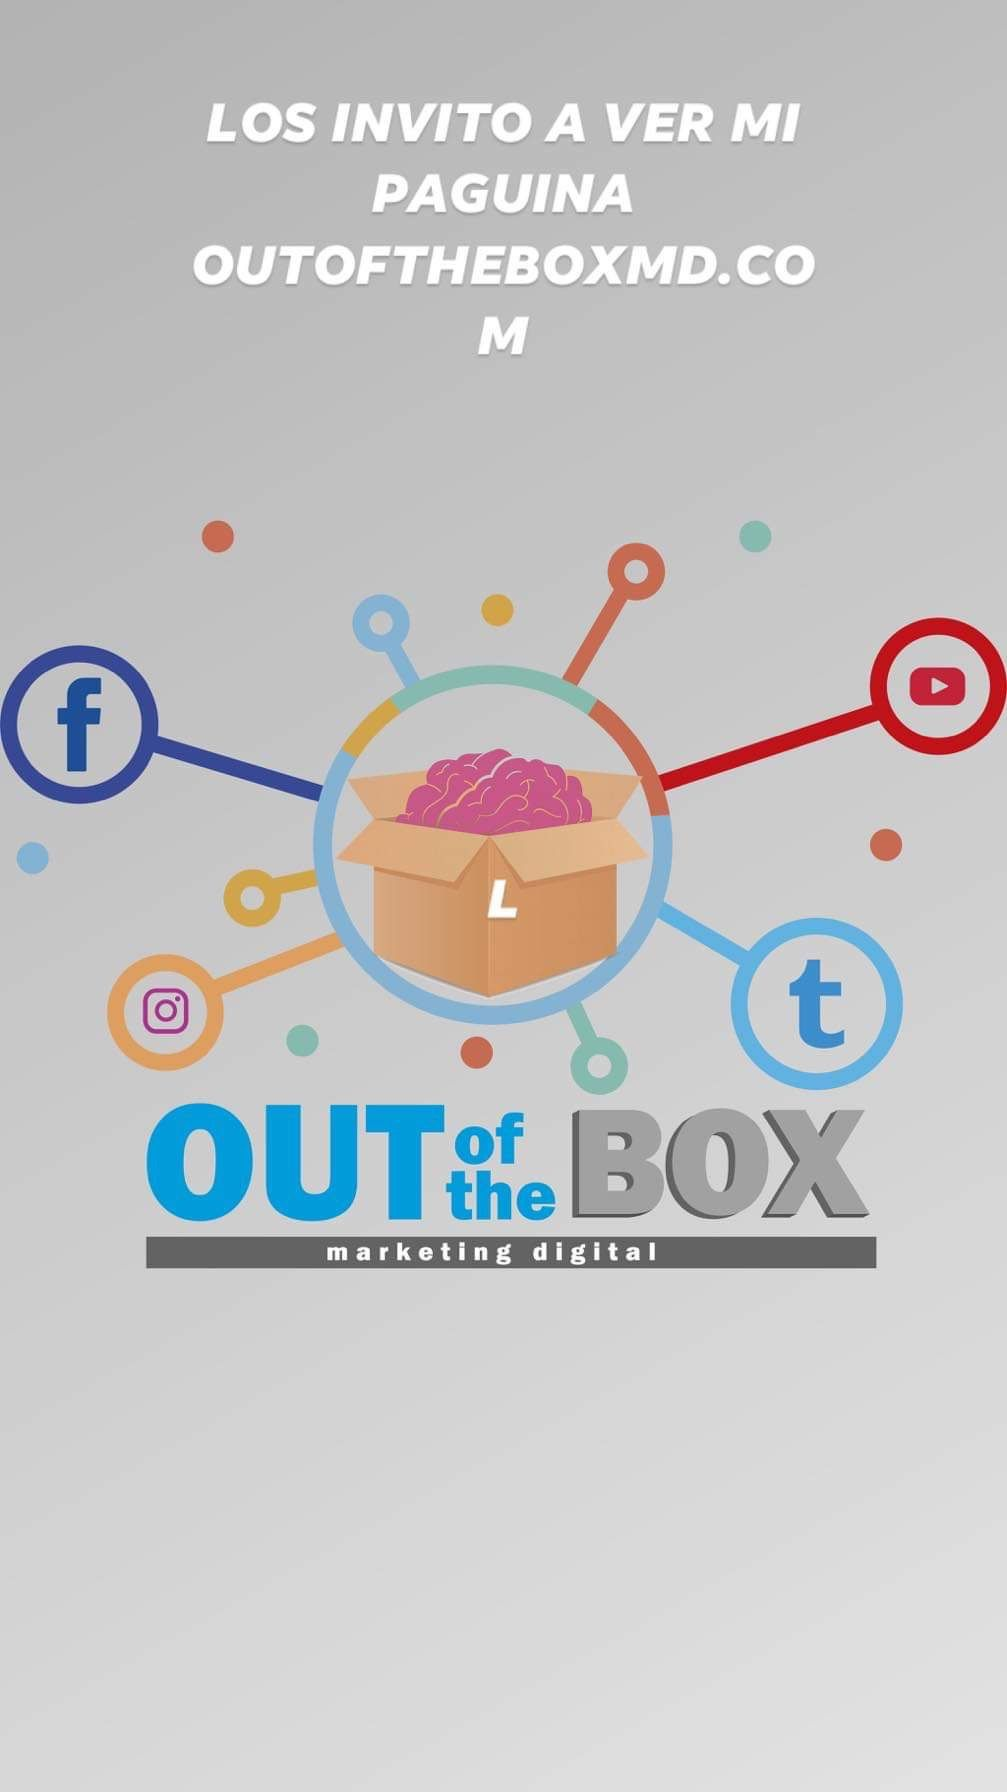 Out of the Box Marketing Digital